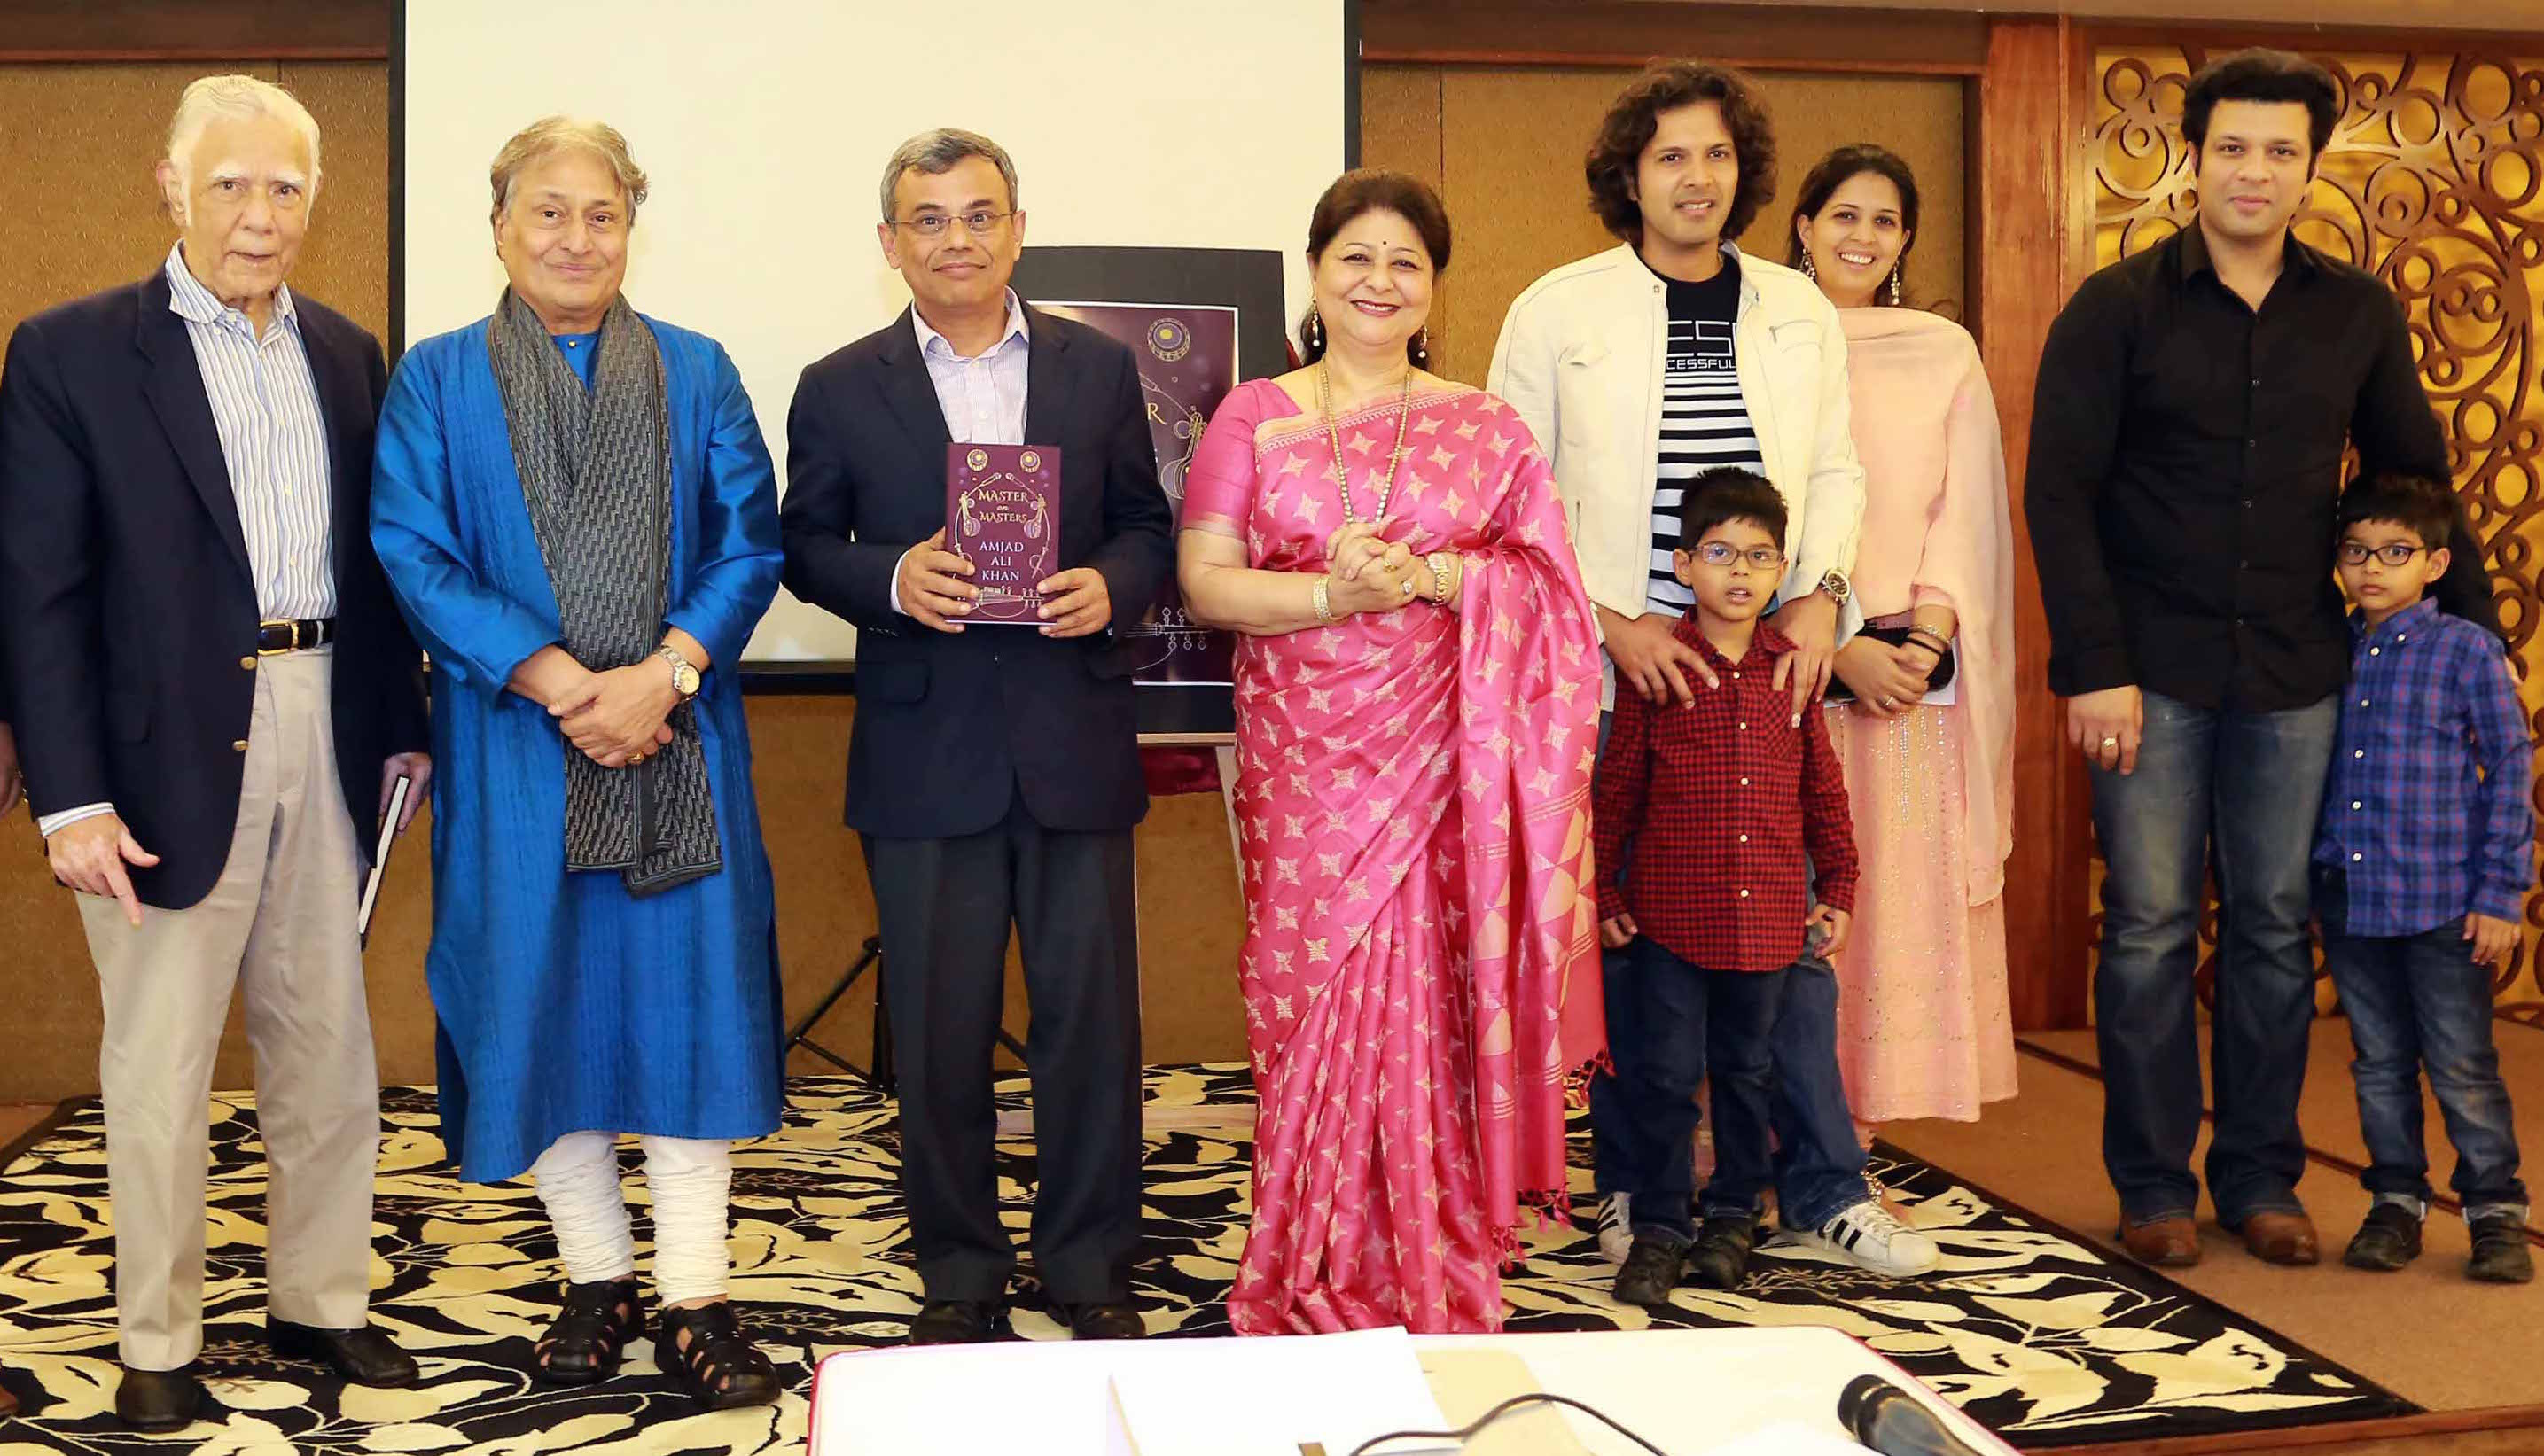 Ustad Amjad Ali Khan with his family, Ambassador Gopinath Pillai and Jawed Ashraf Photo courtesy: ISAS